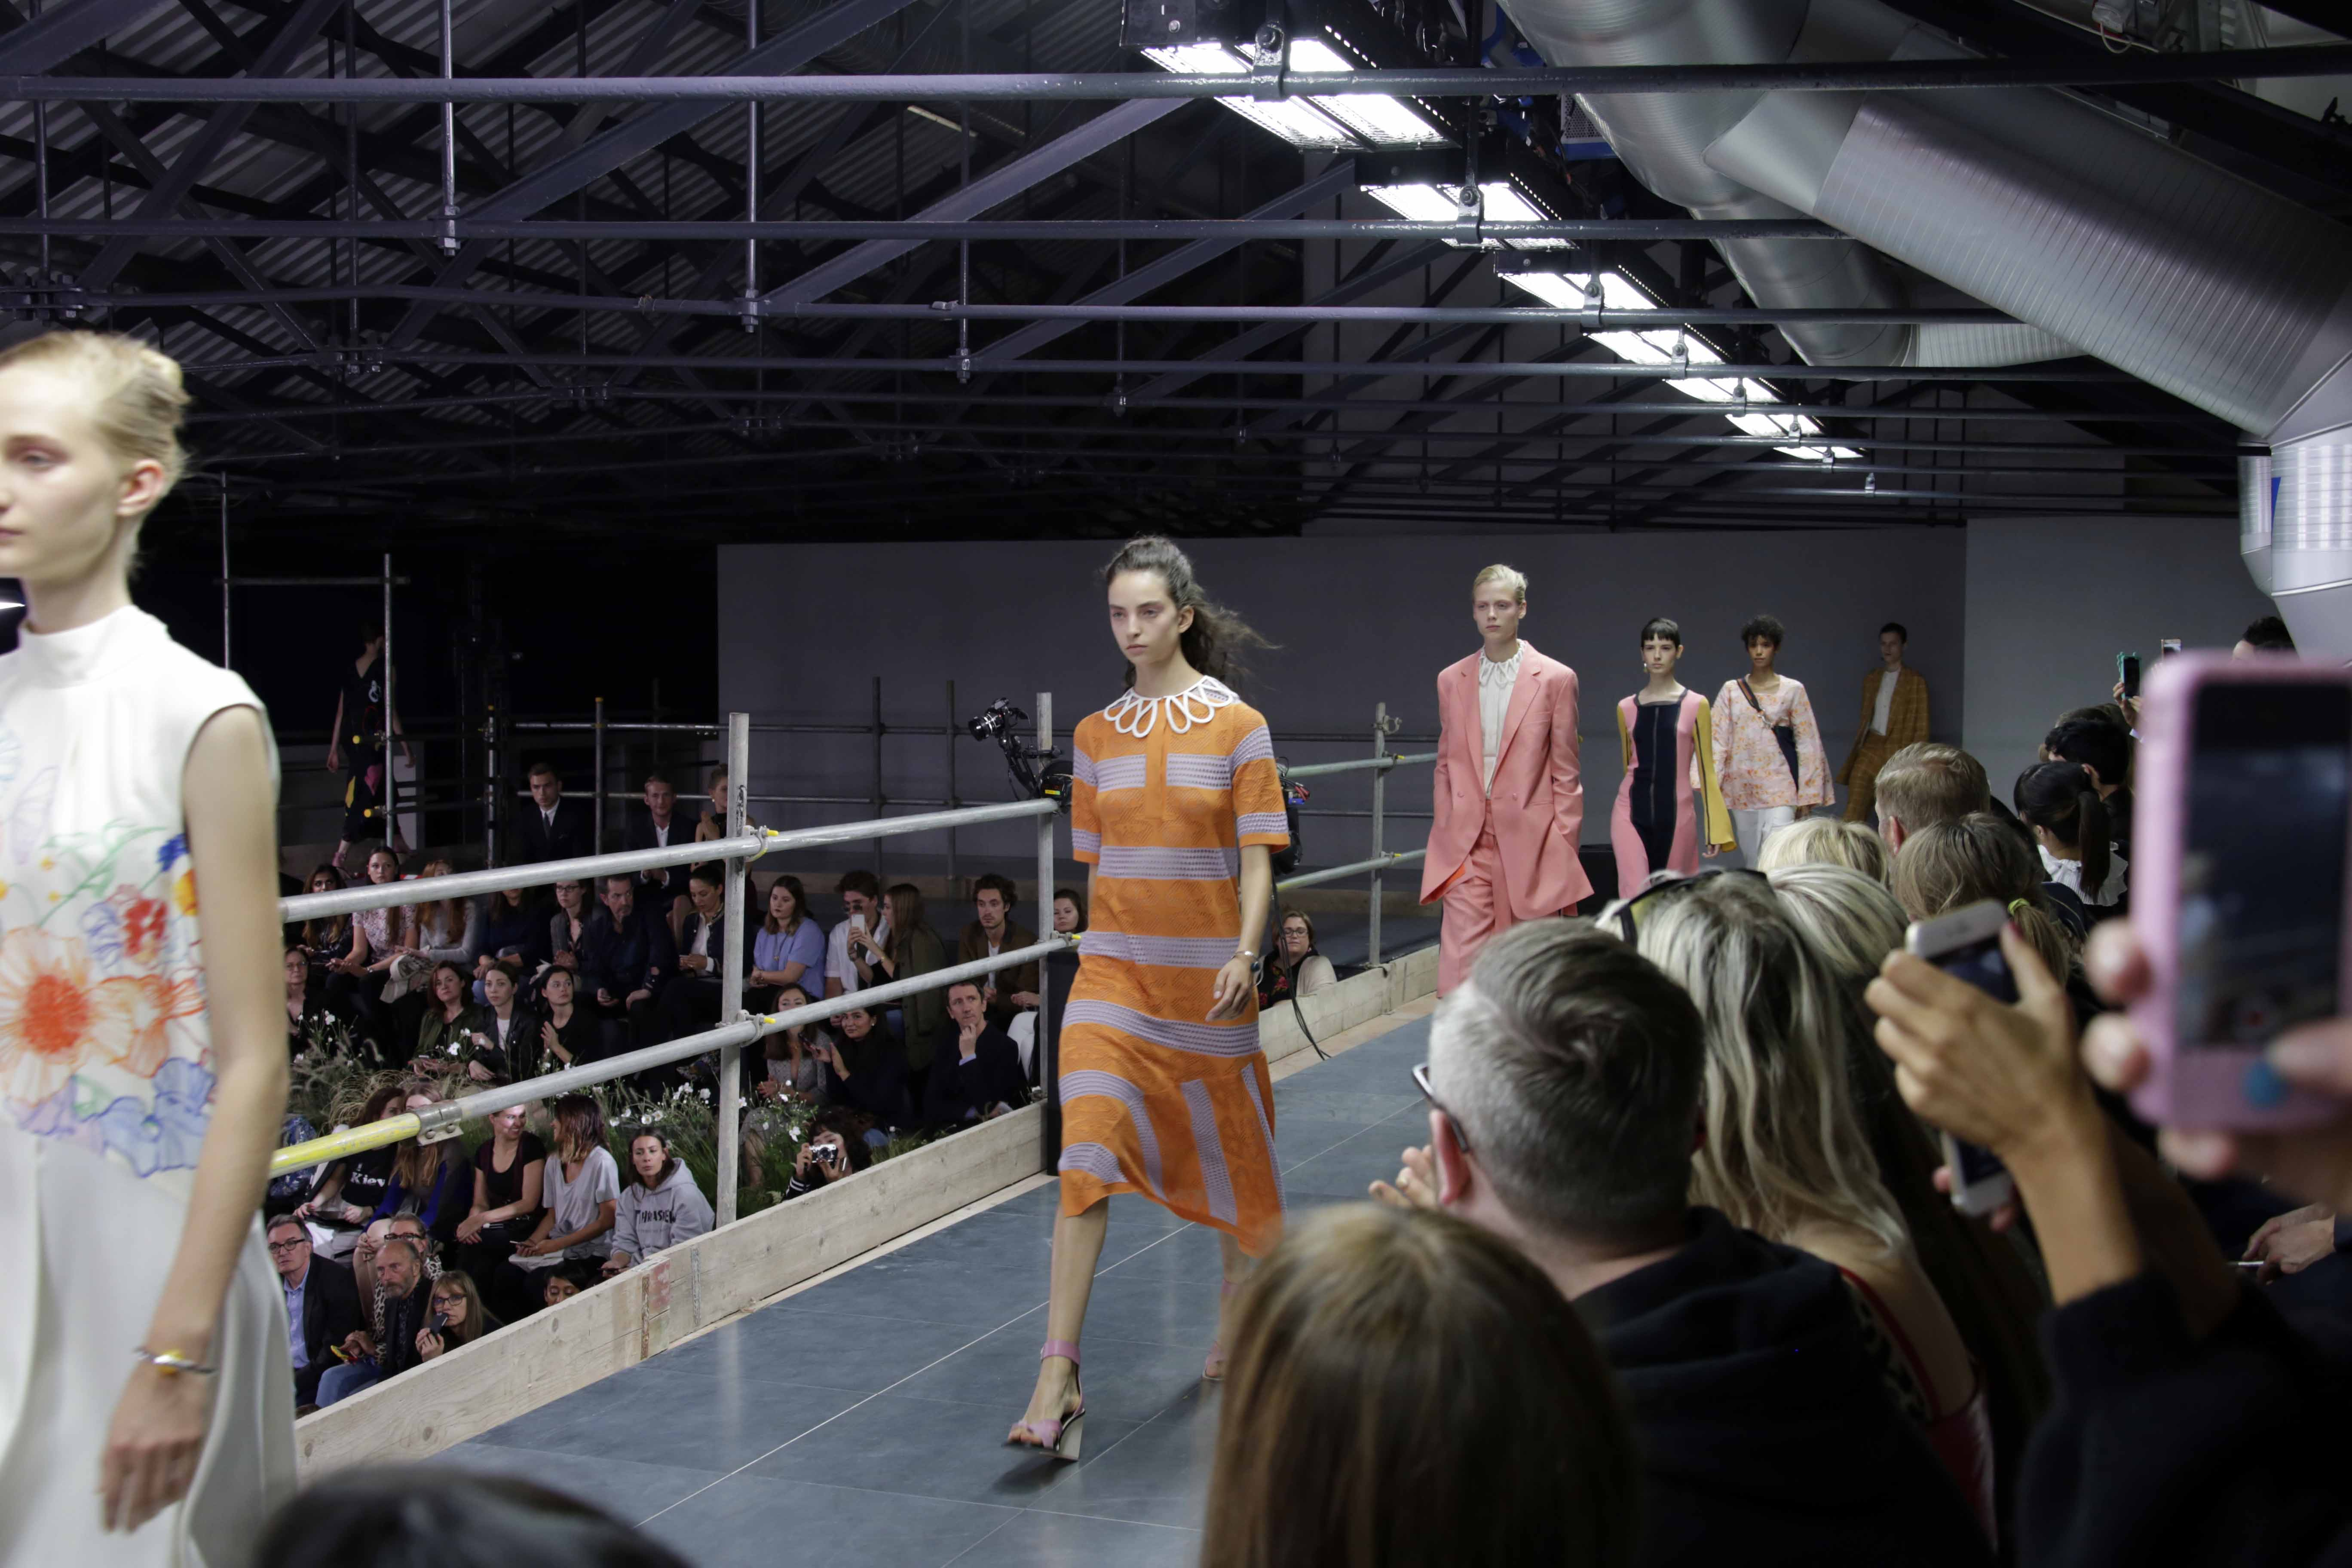 Paul Smith's SS17 Collection: an ever new take on his legacy stripes, flower prints and femininity